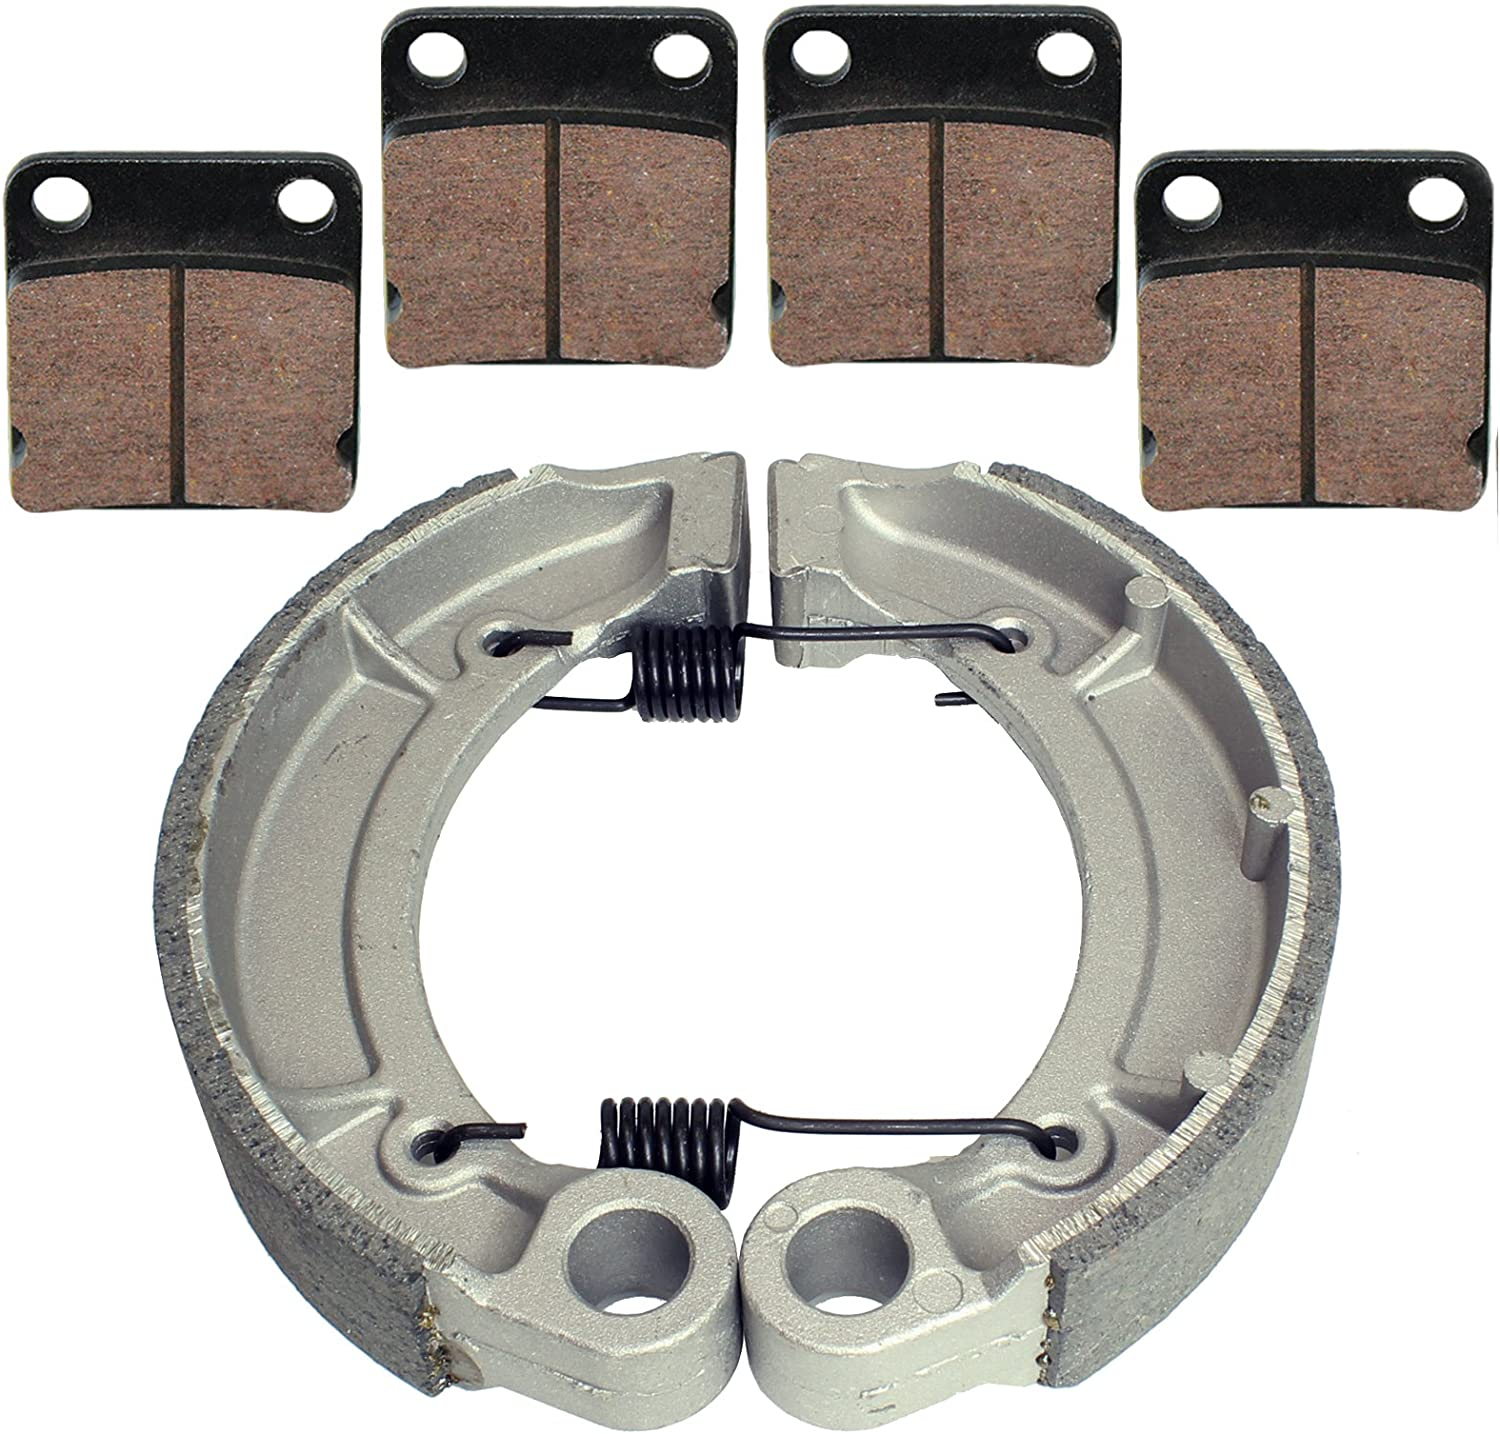 Brake Pads /& Brake Shoes fits Yamaha Grizzly 350 YFM350 2007-2014 Front and Rear